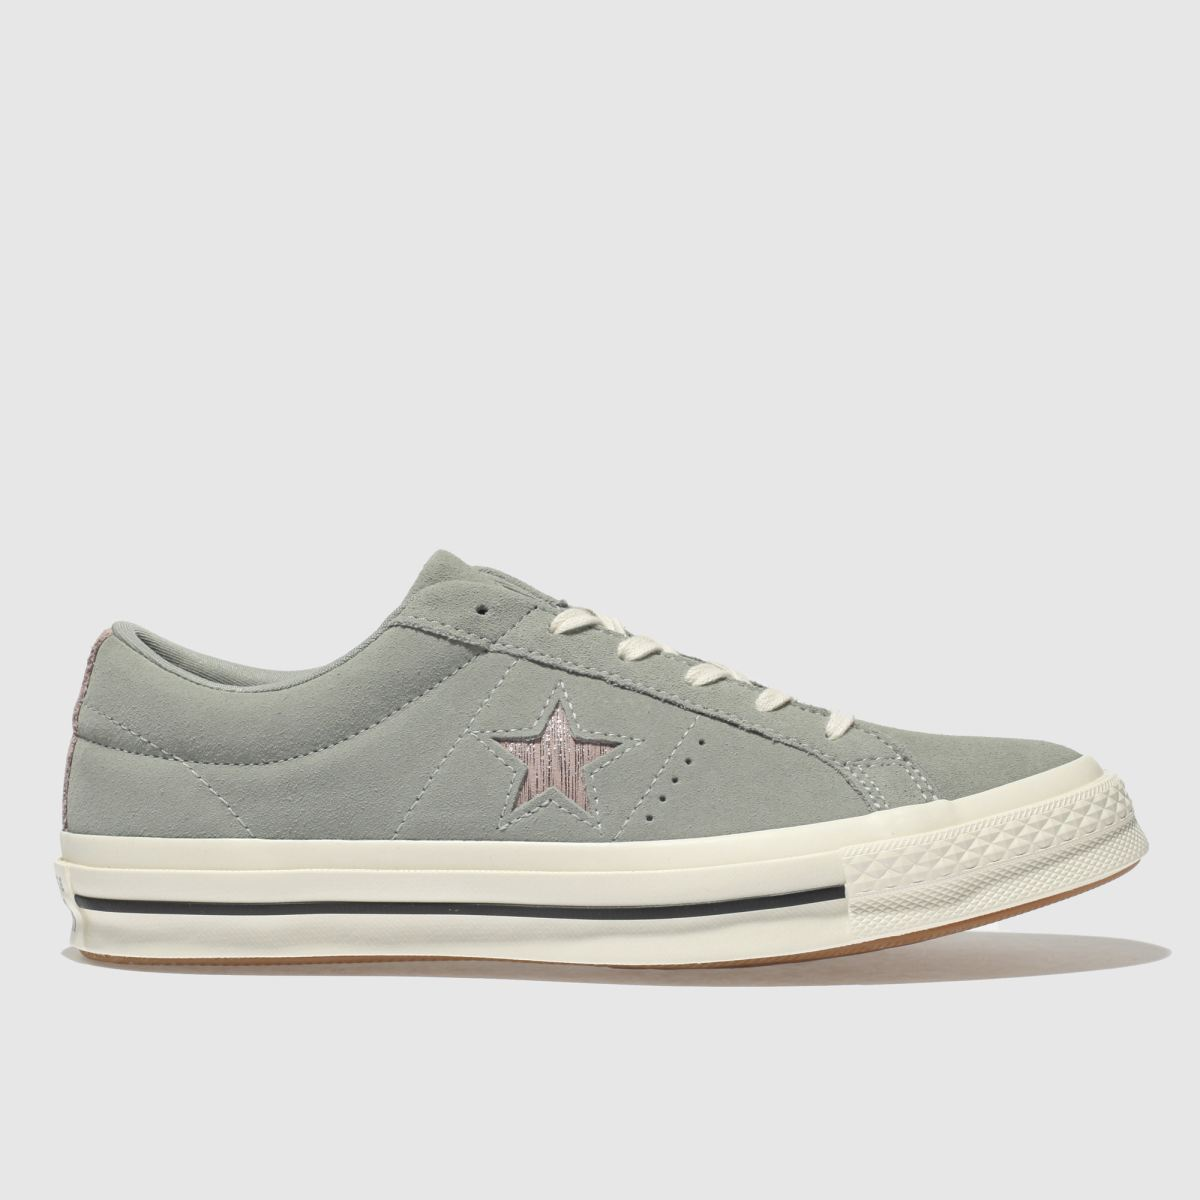 Converse Khaki One Star Ox Suede Trainers